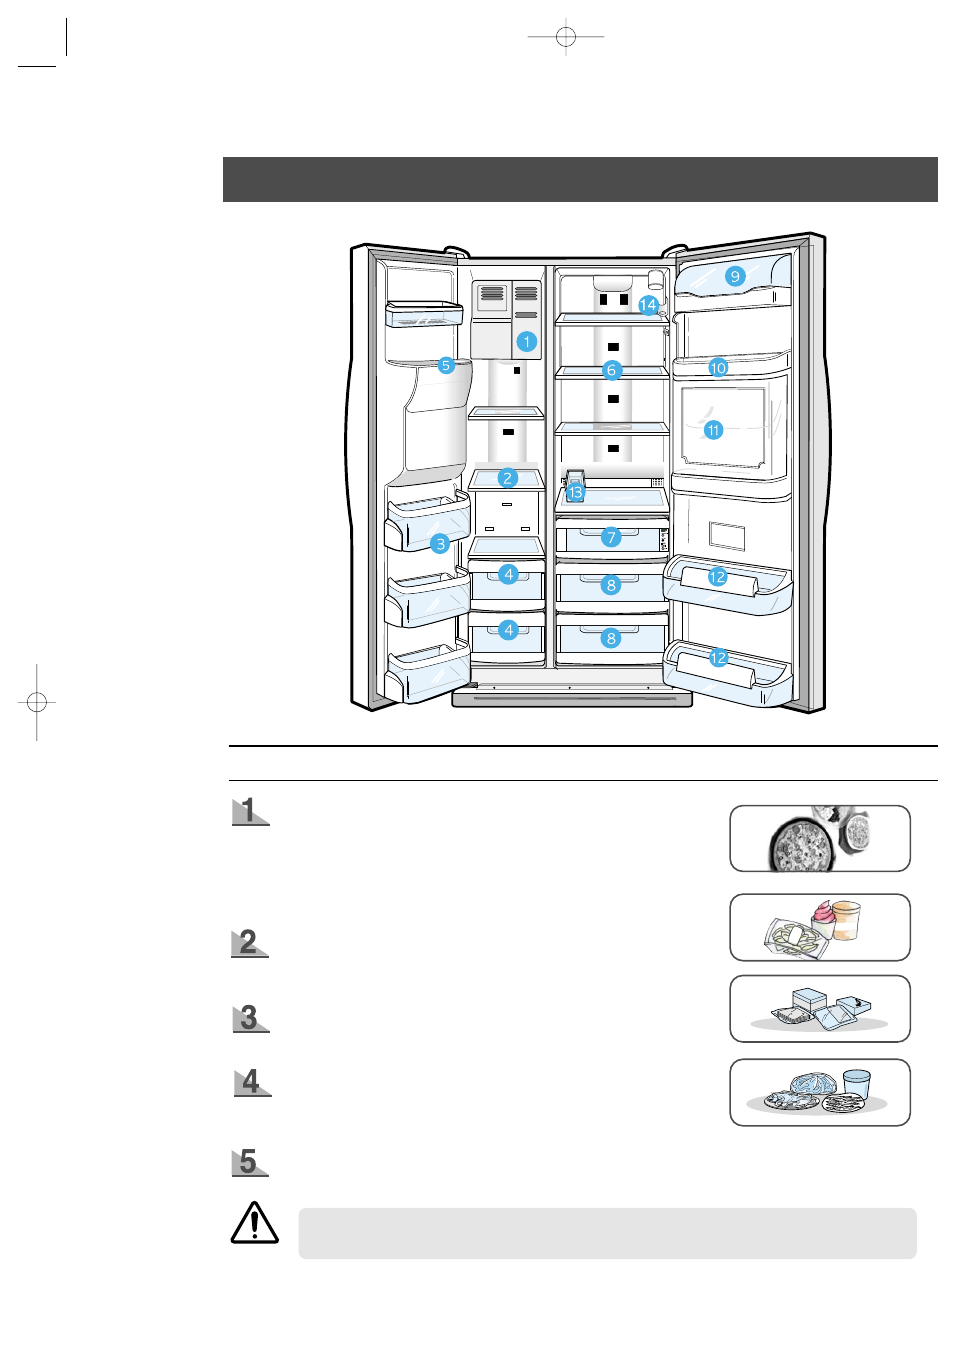 food storage guide, frozen food storage in freezer   samsung rs2555sl-xaa  user manual   page 9 / 32